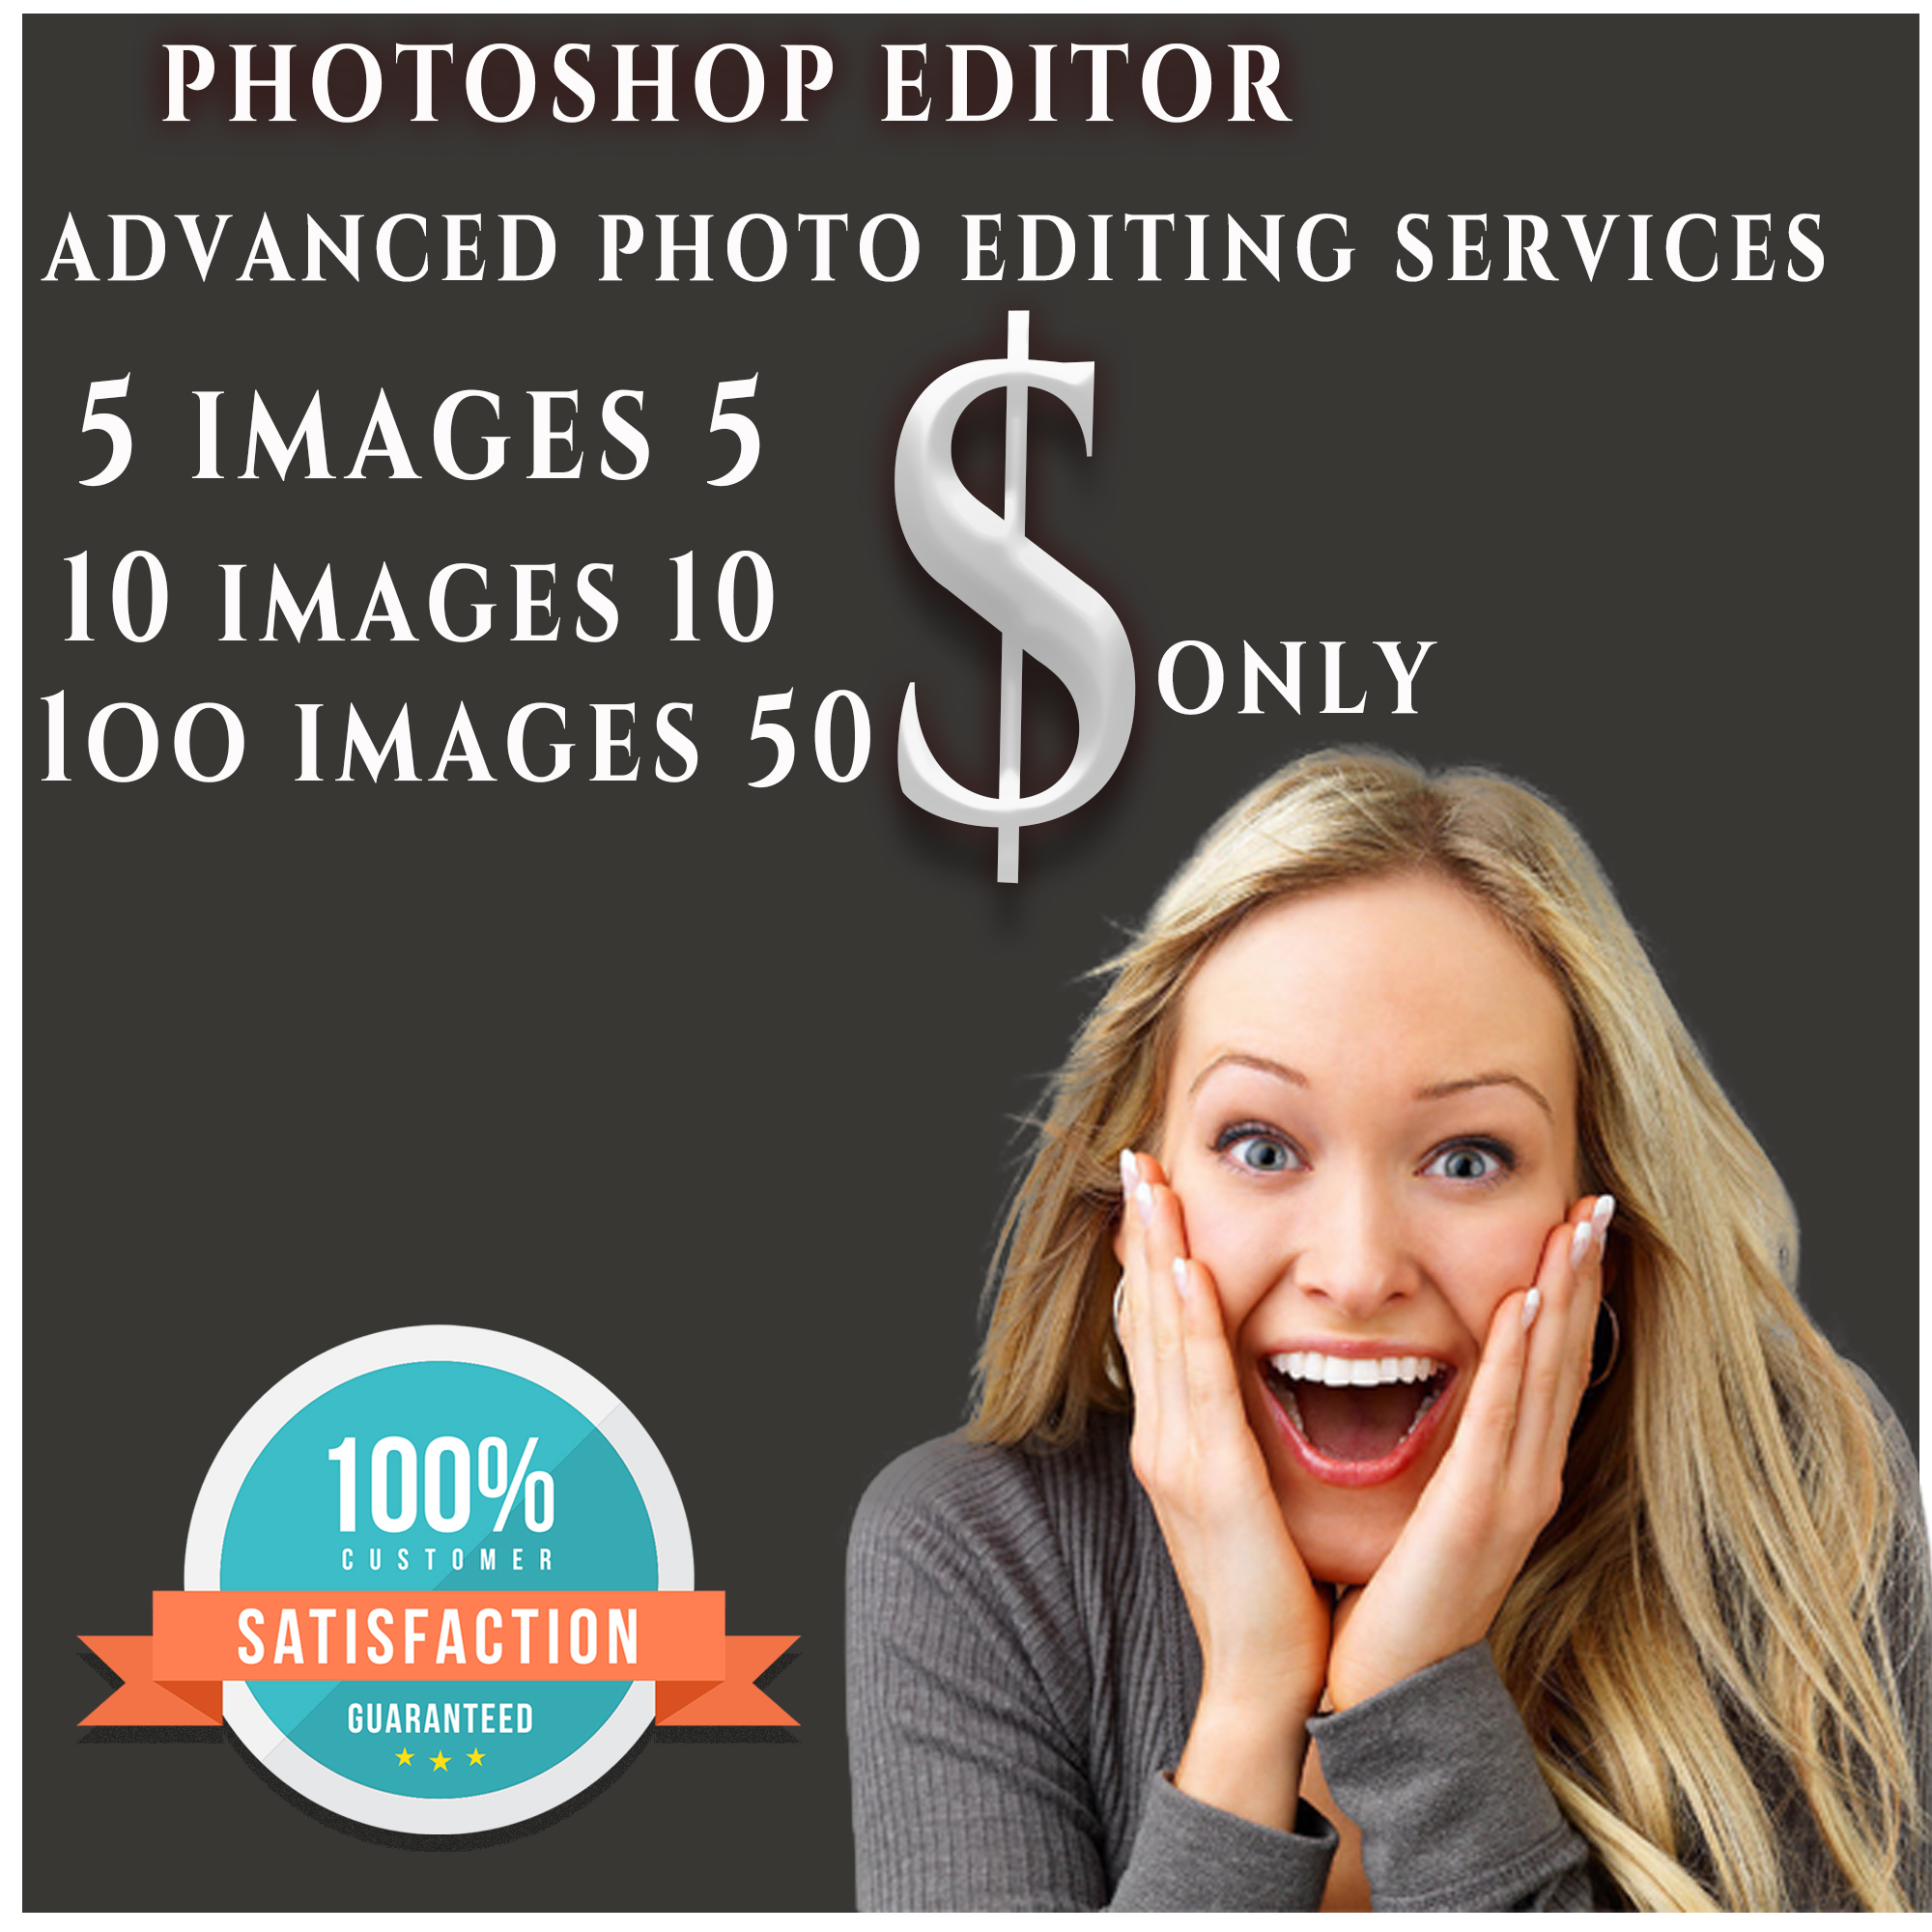 Photoshop expert, professional photo editor